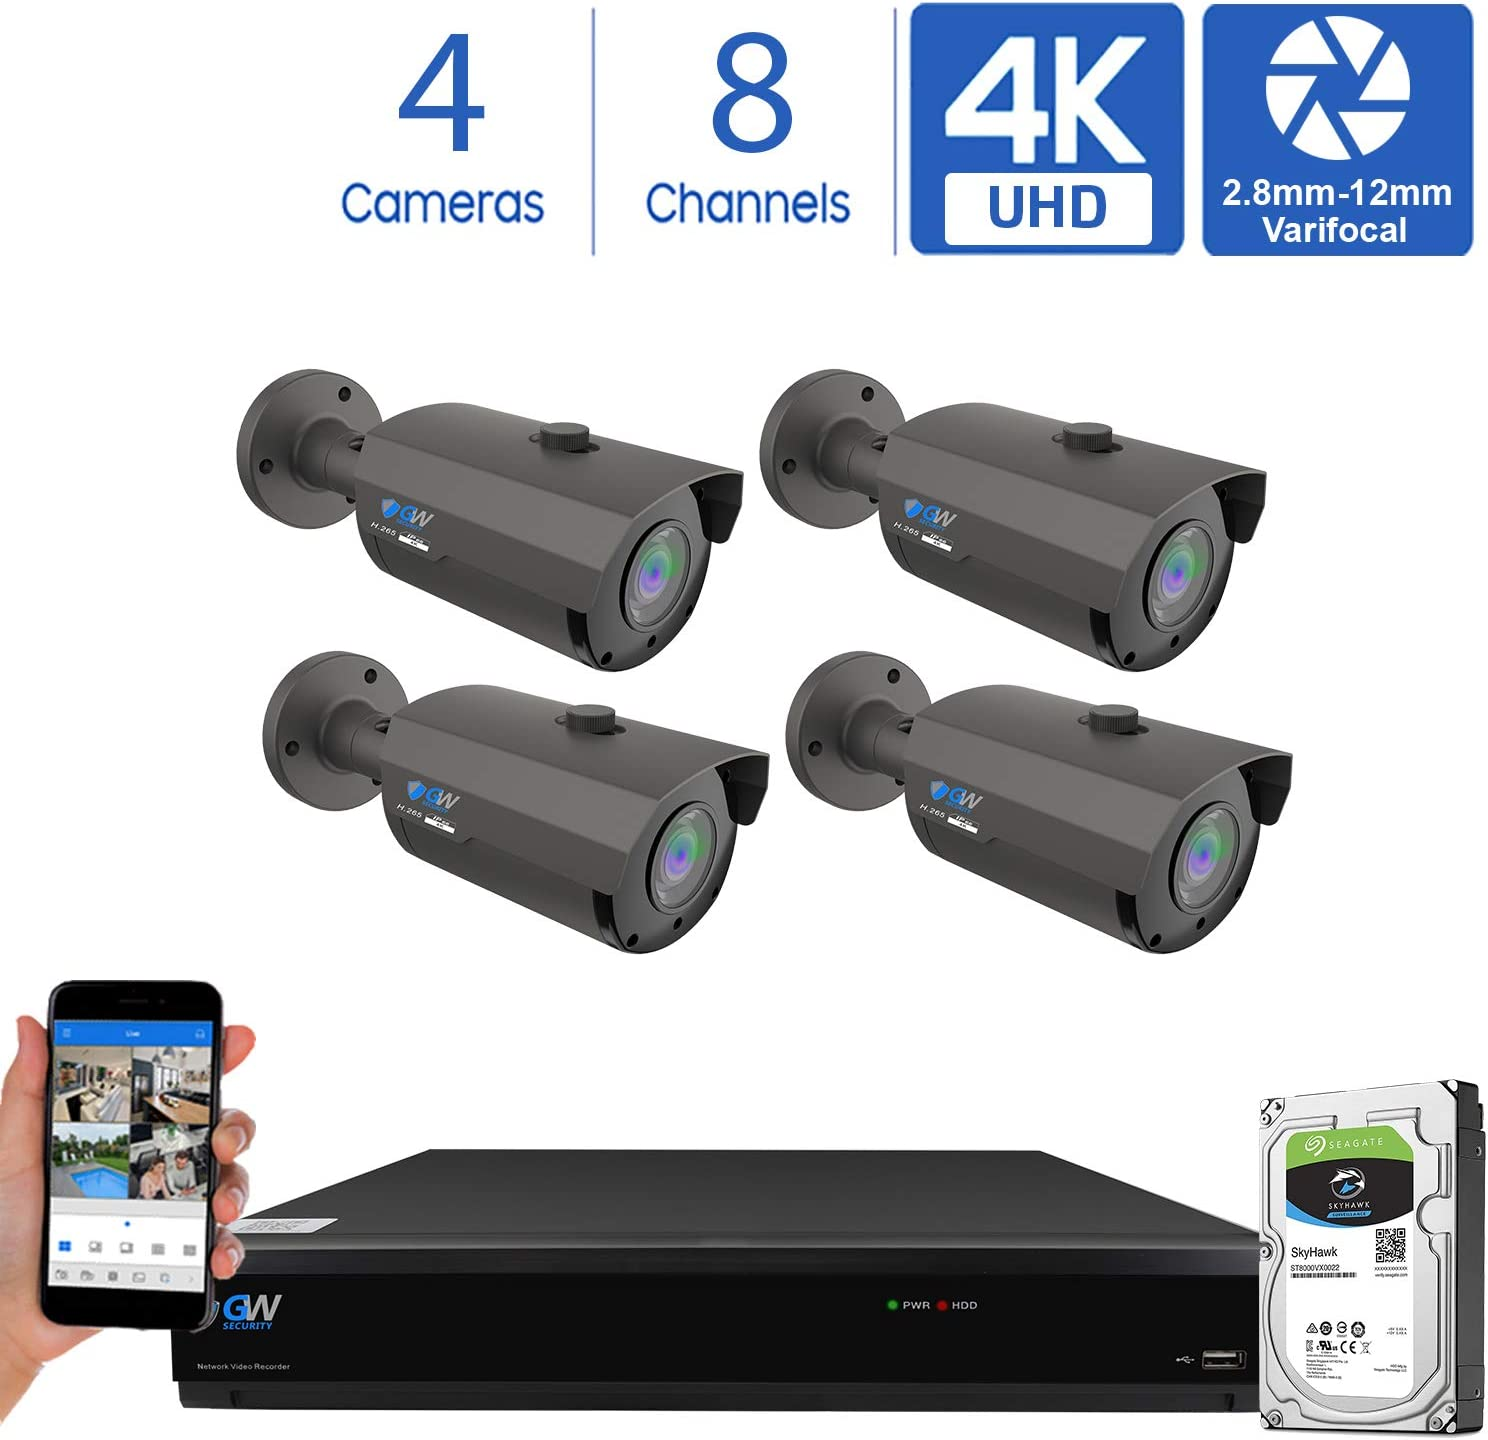 GW 8 Channel 4K H.265 CCTV DVR Security Camera System with 4 x UHD 8MP 2.8-12mm Varifocal Zoom 4K Bullet Surveillance Cameras and 2TB HDD, Free Remote View, Motion Alert with Snapshot